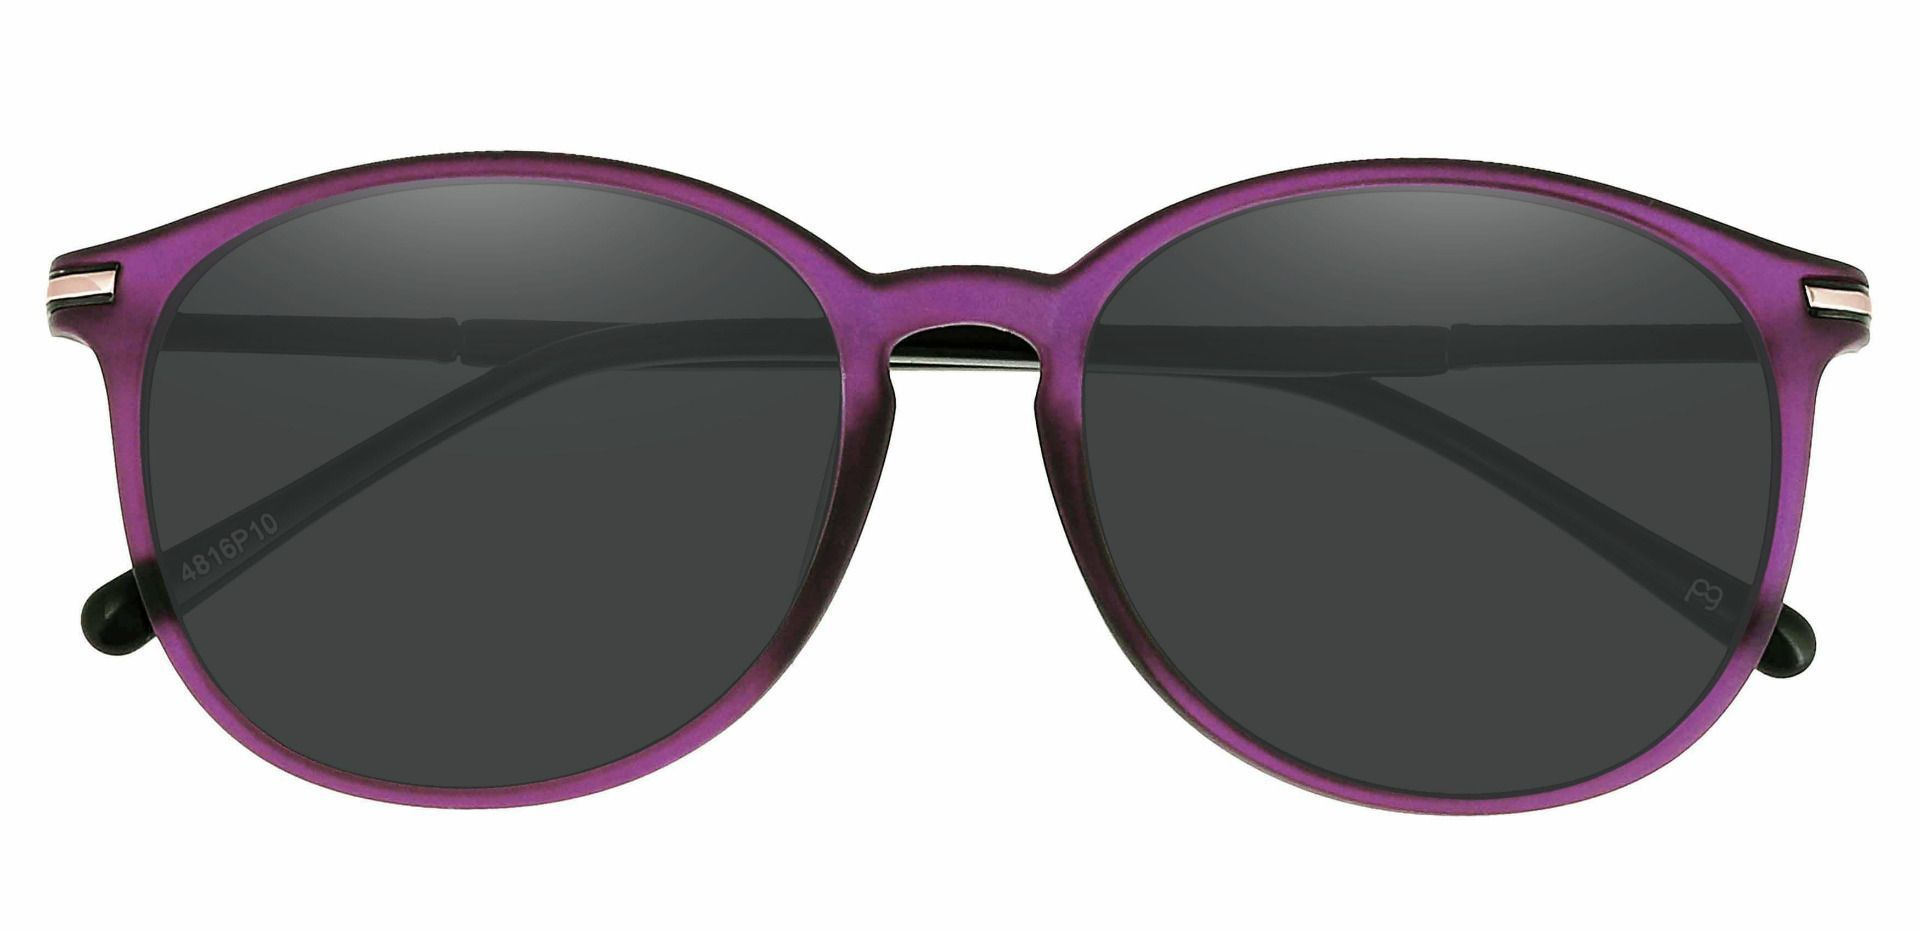 Danbury Oval Prescription Sunglasses - Purple Frame With Gray Lenses